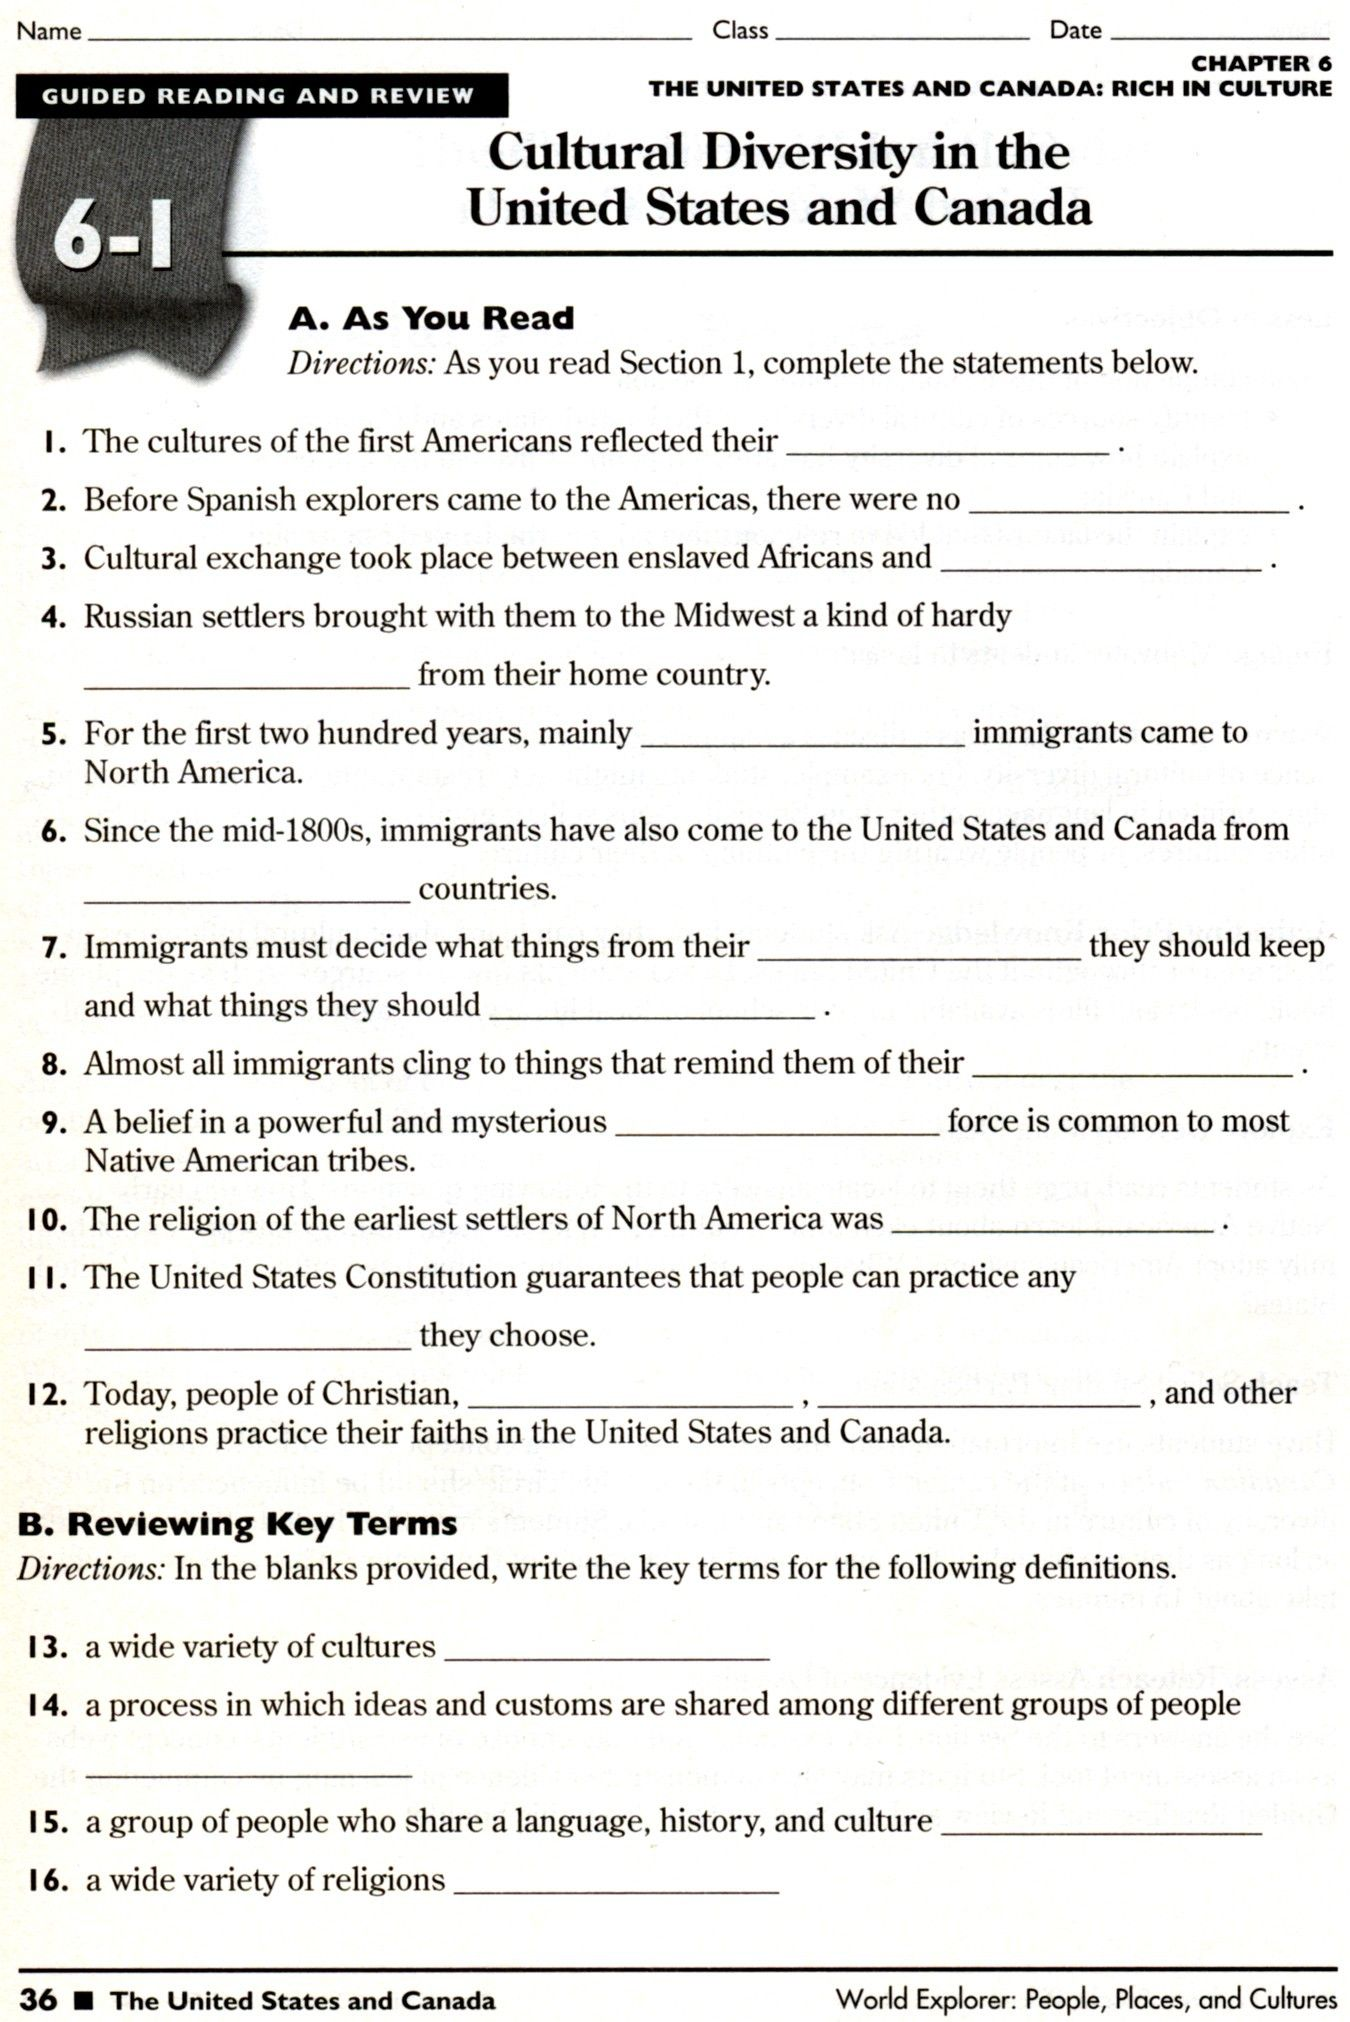 7th Grade Money Worksheet